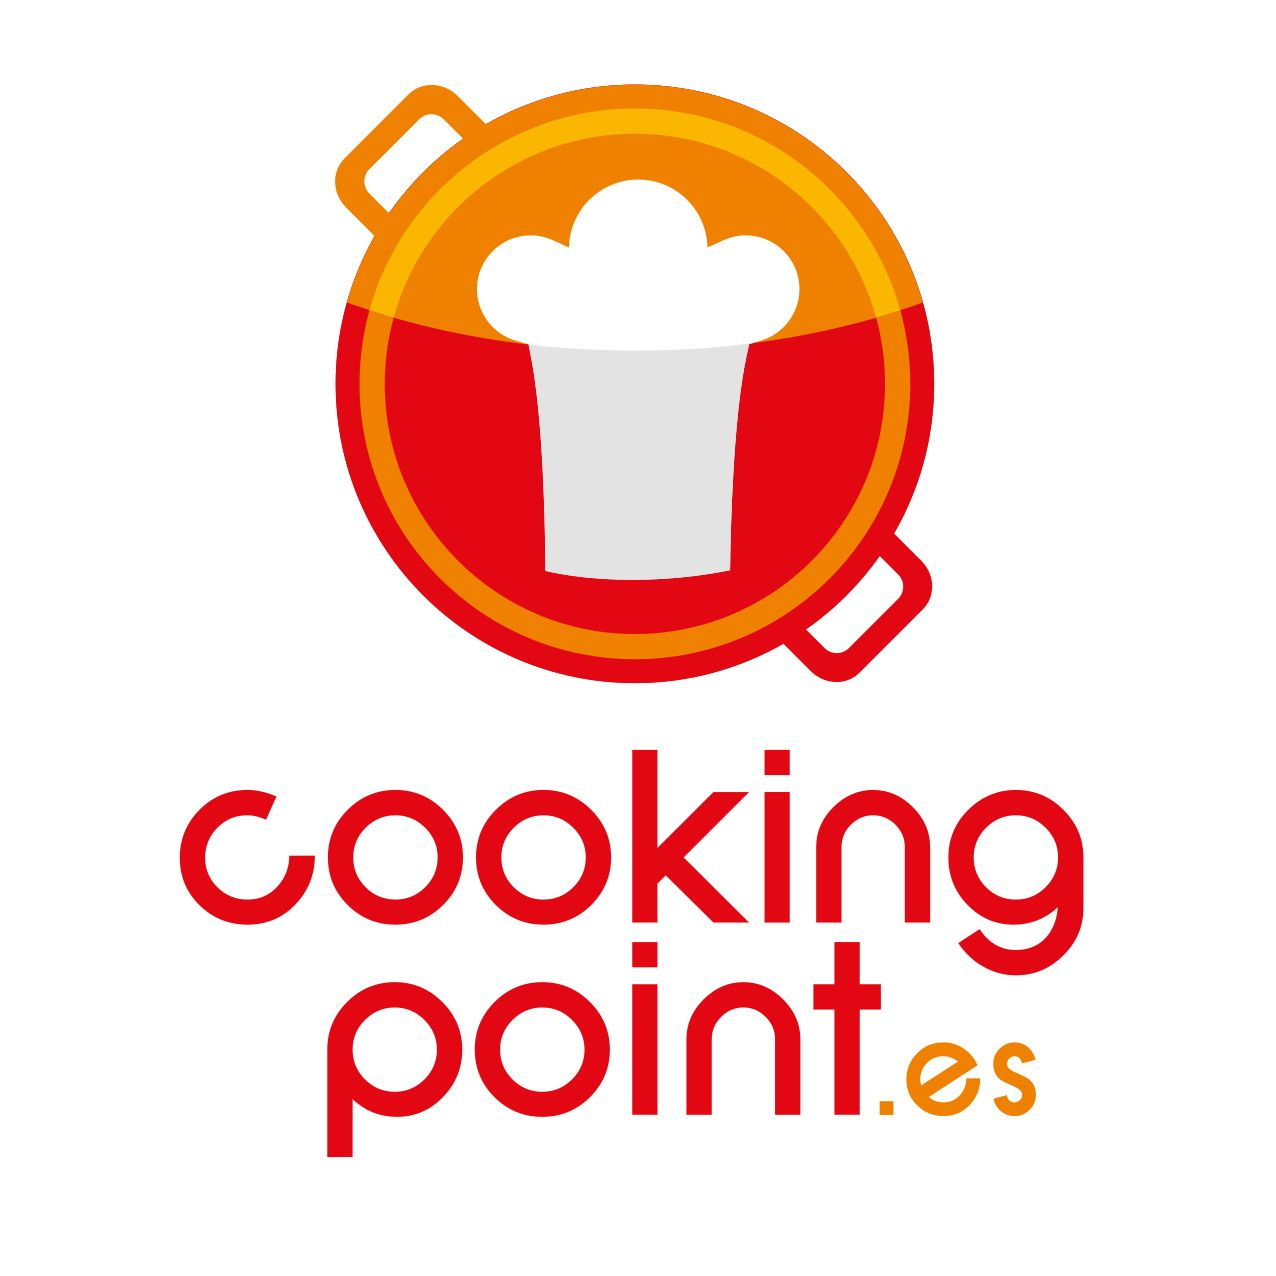 Cooking Point logo